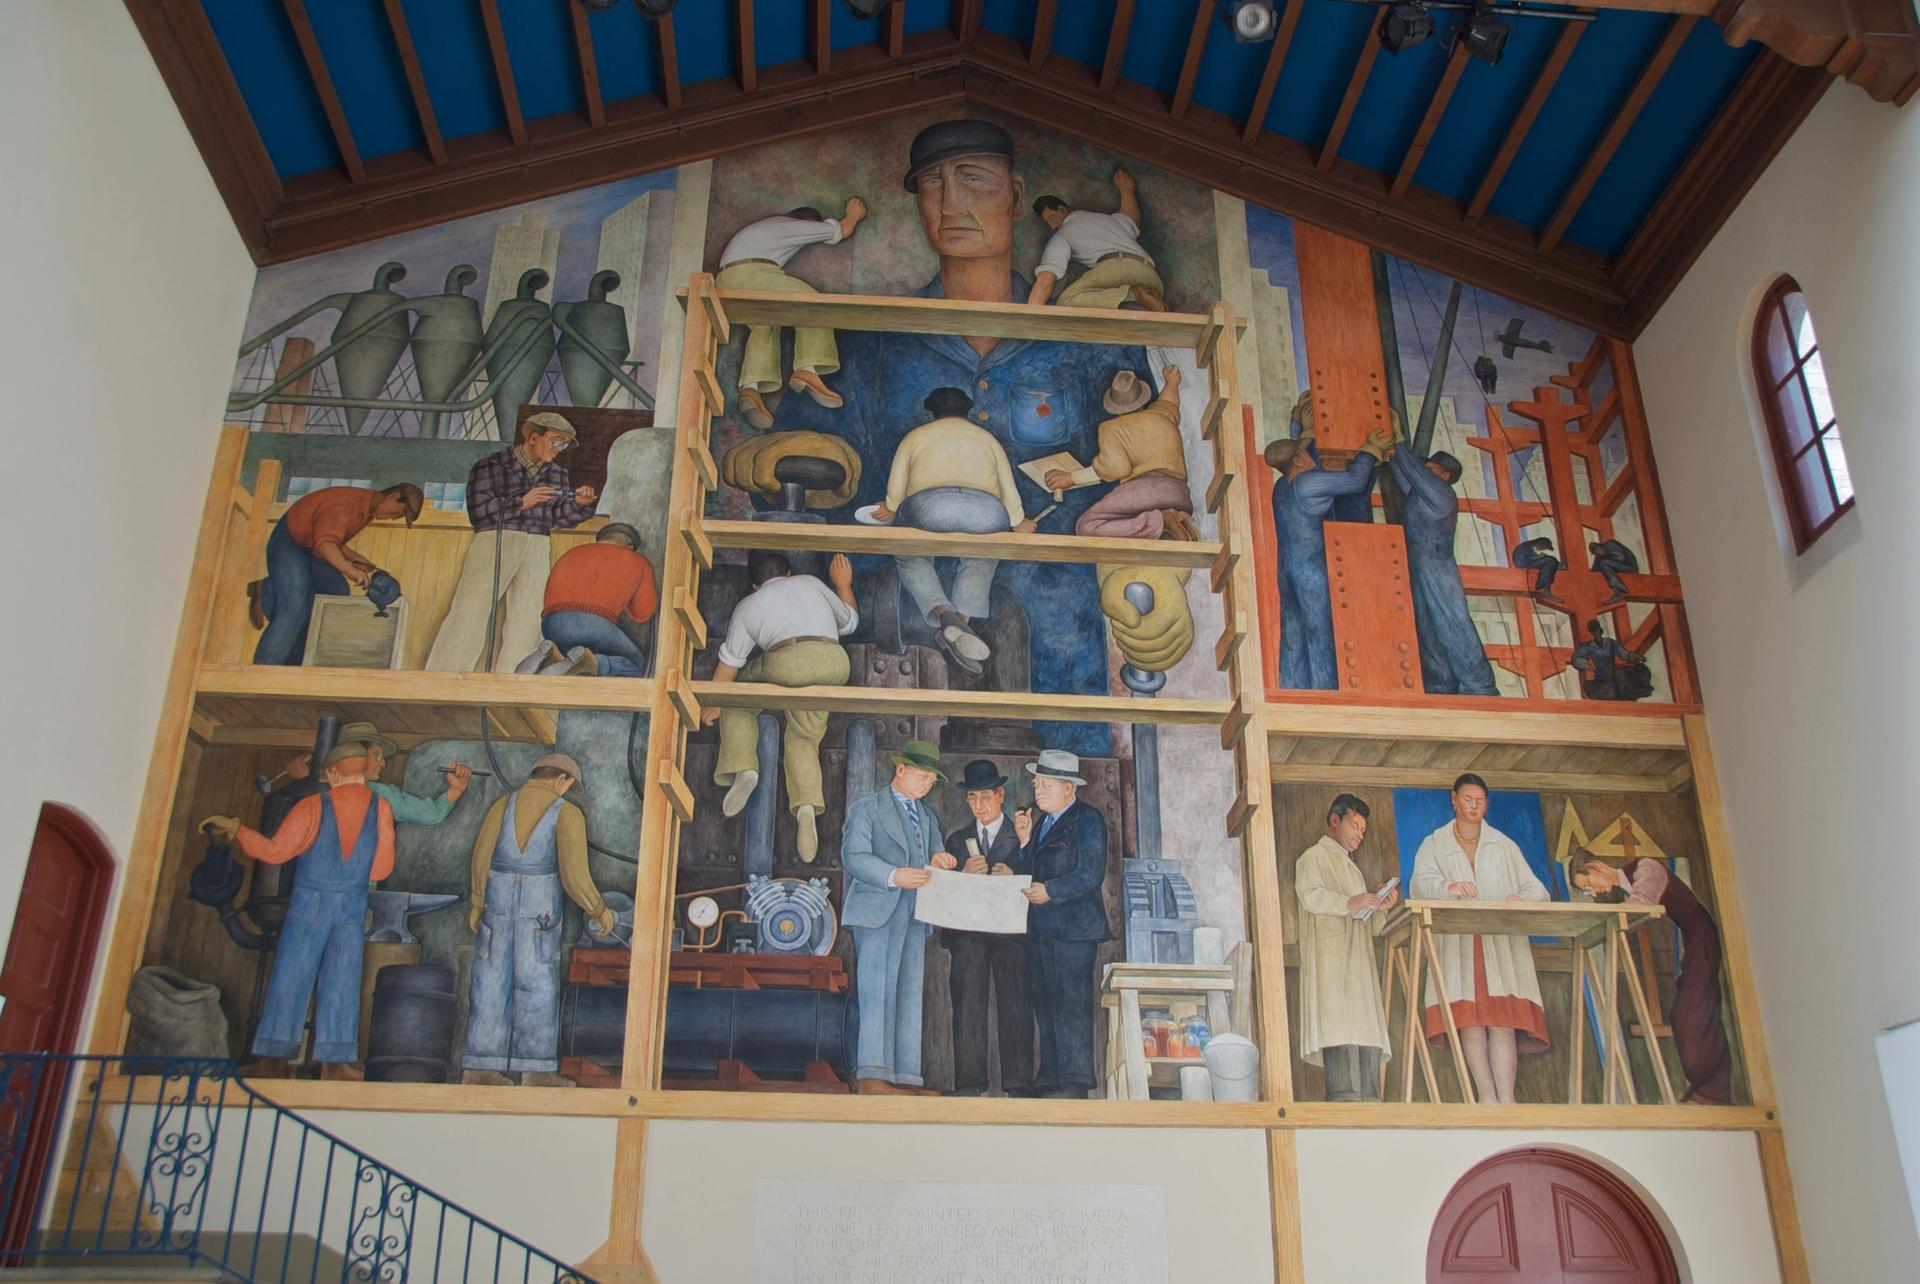 Diego Rivera's The Making of a Fresco Showing the Building of a City at the San Francisco Art Institute Photo: Steve Rhodes